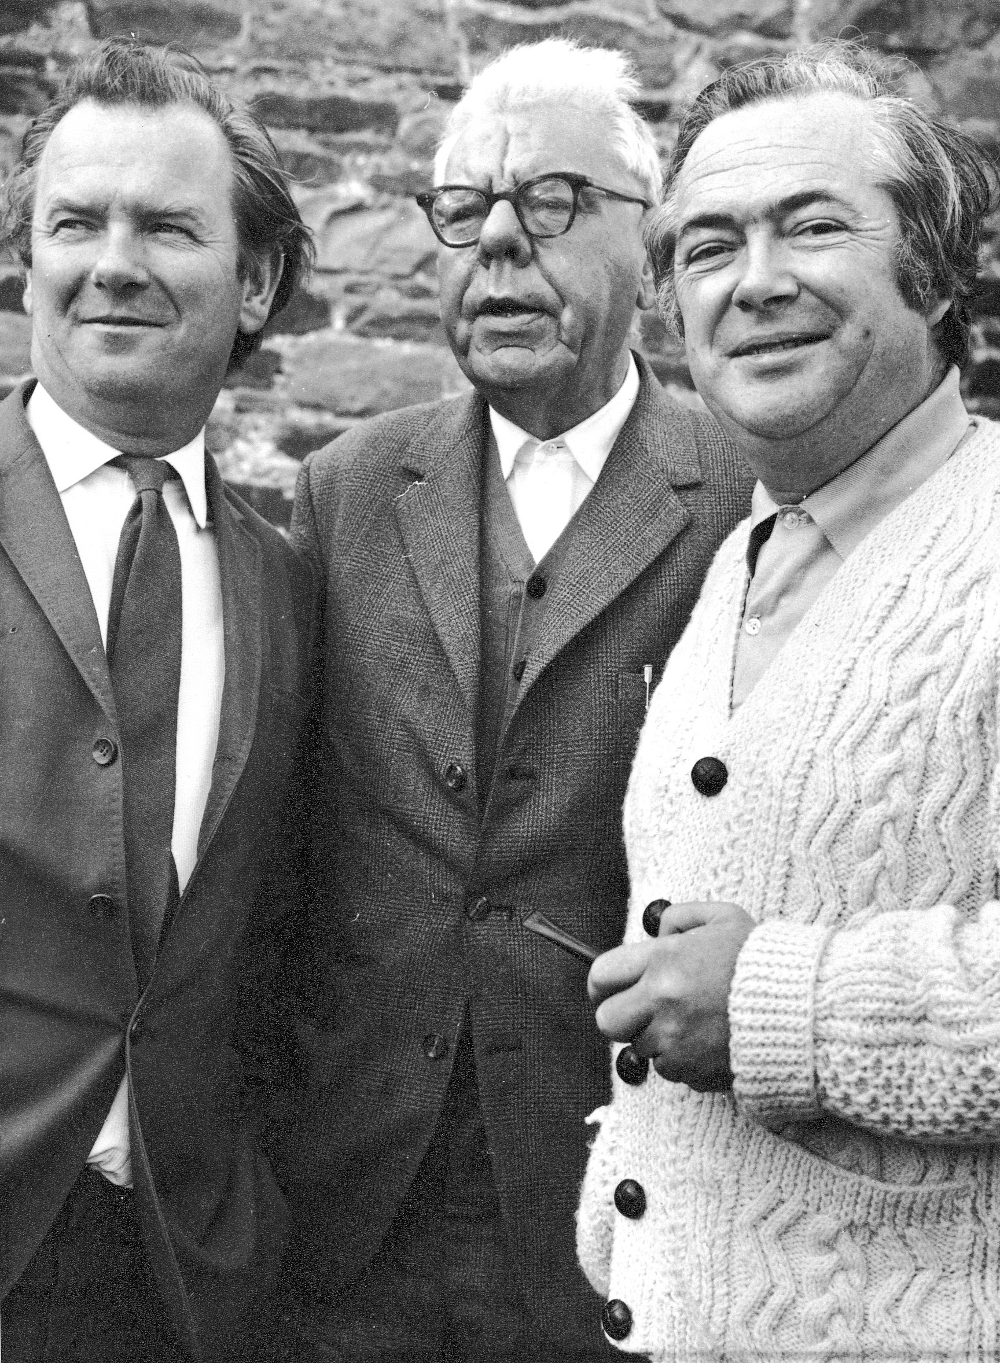 Photograph of Con Howard, Máirtín Ó Cadhain and Dr Seán J. White